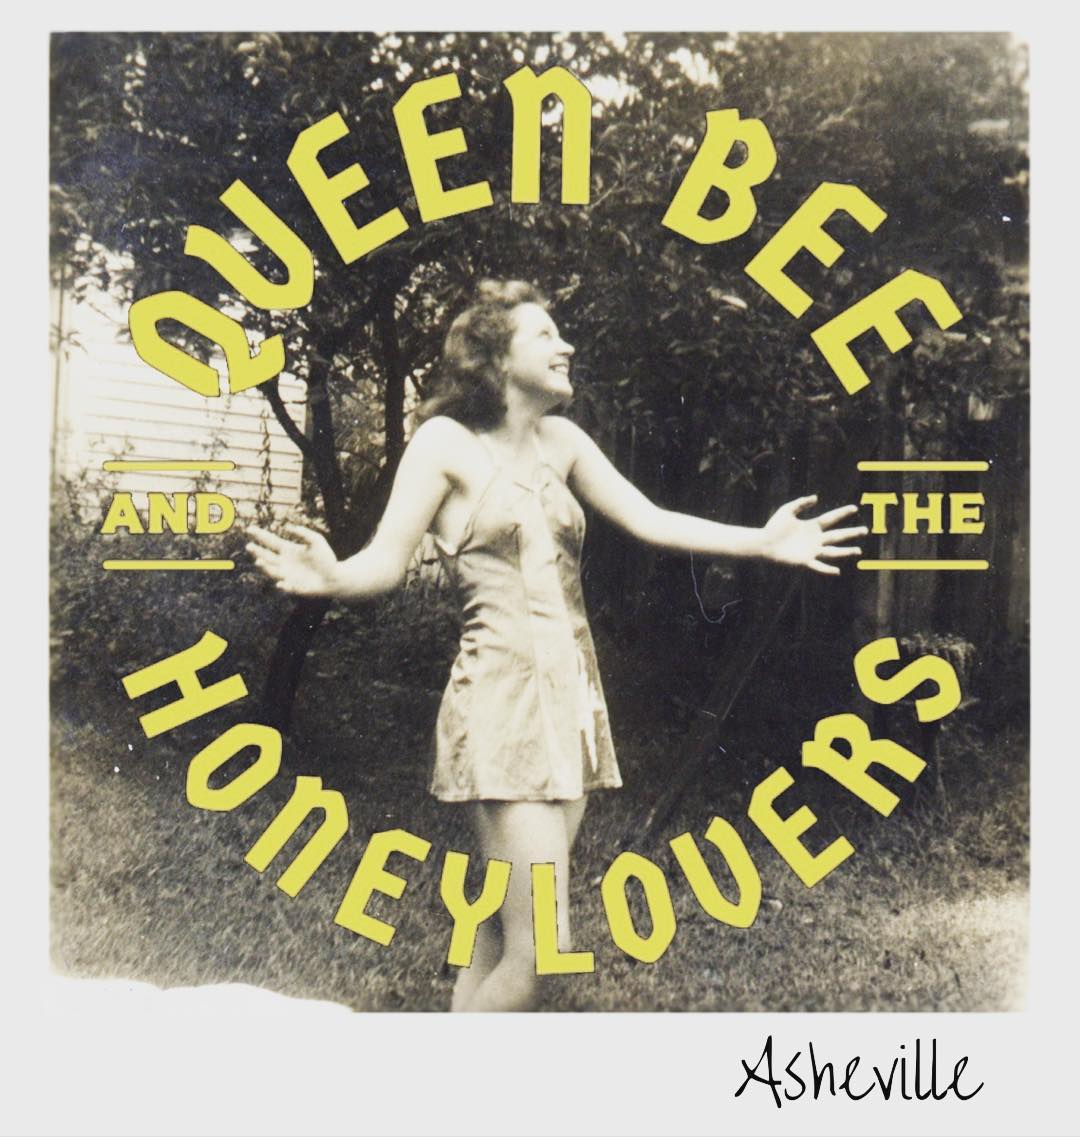 Swing folk ensemble Queen Bee & The Honeylovers pay homage to their beloved hometown, Asheville, NC, with debut album - out Saturday, April 27.